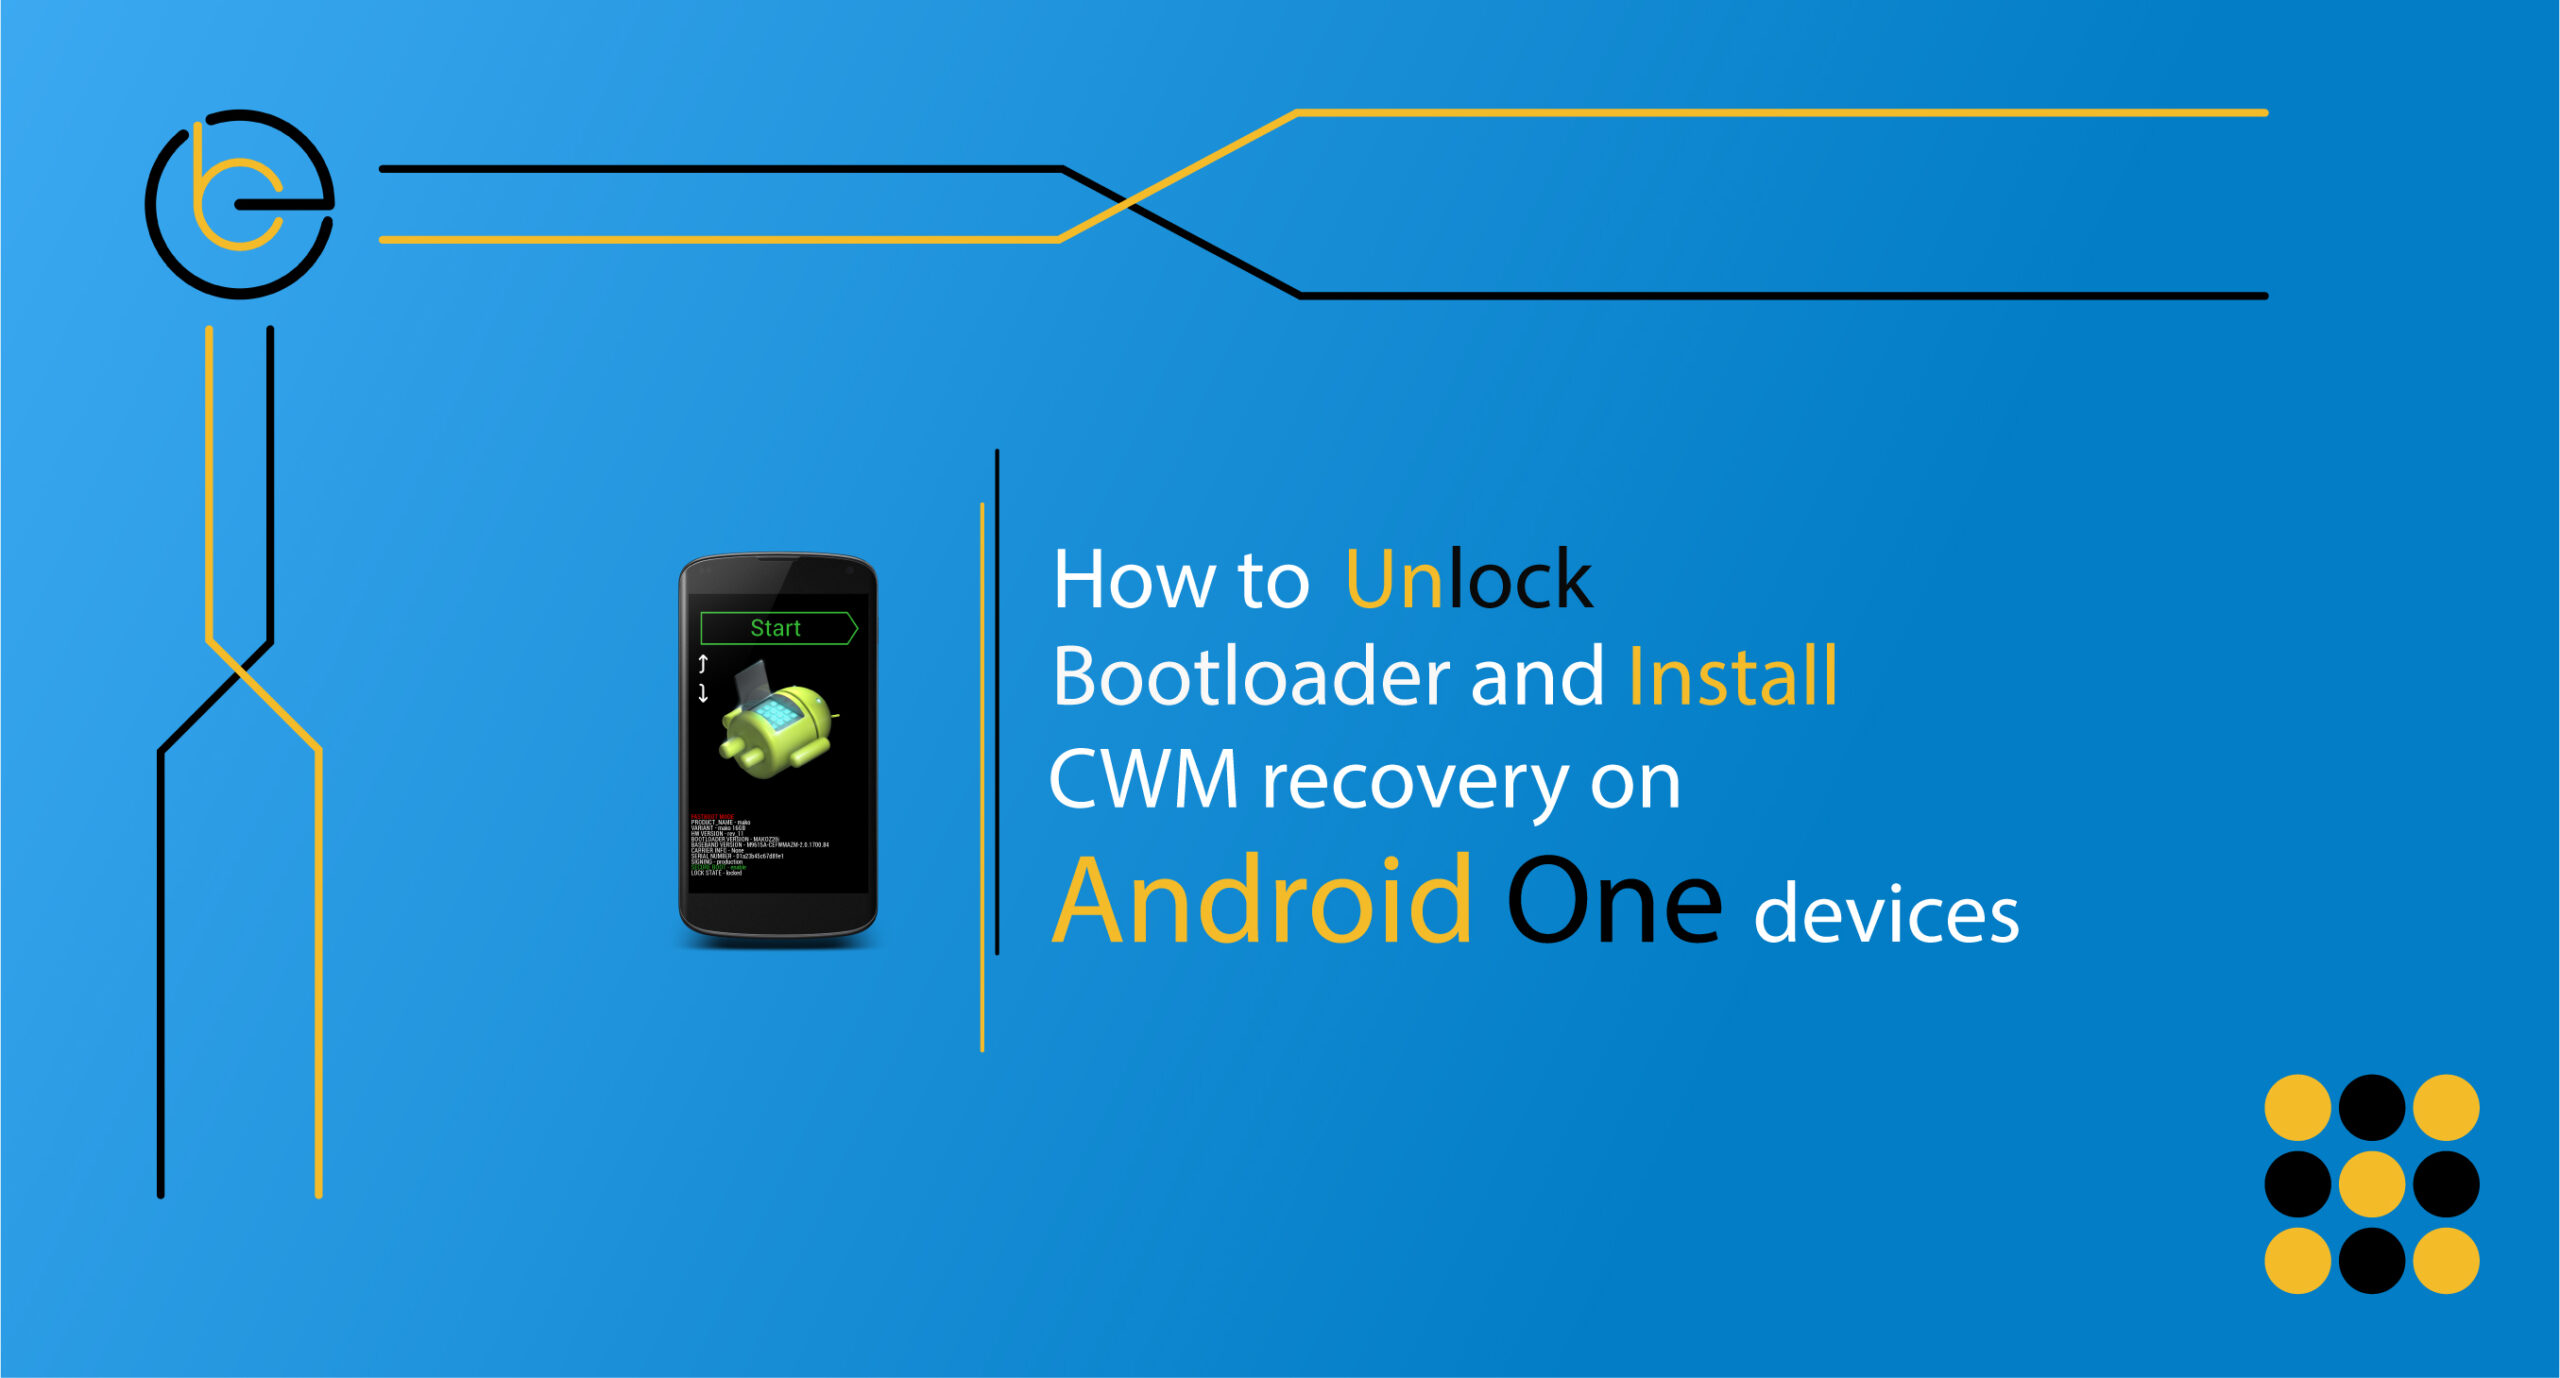 Unlock Bootloader And Install CWM Recovery